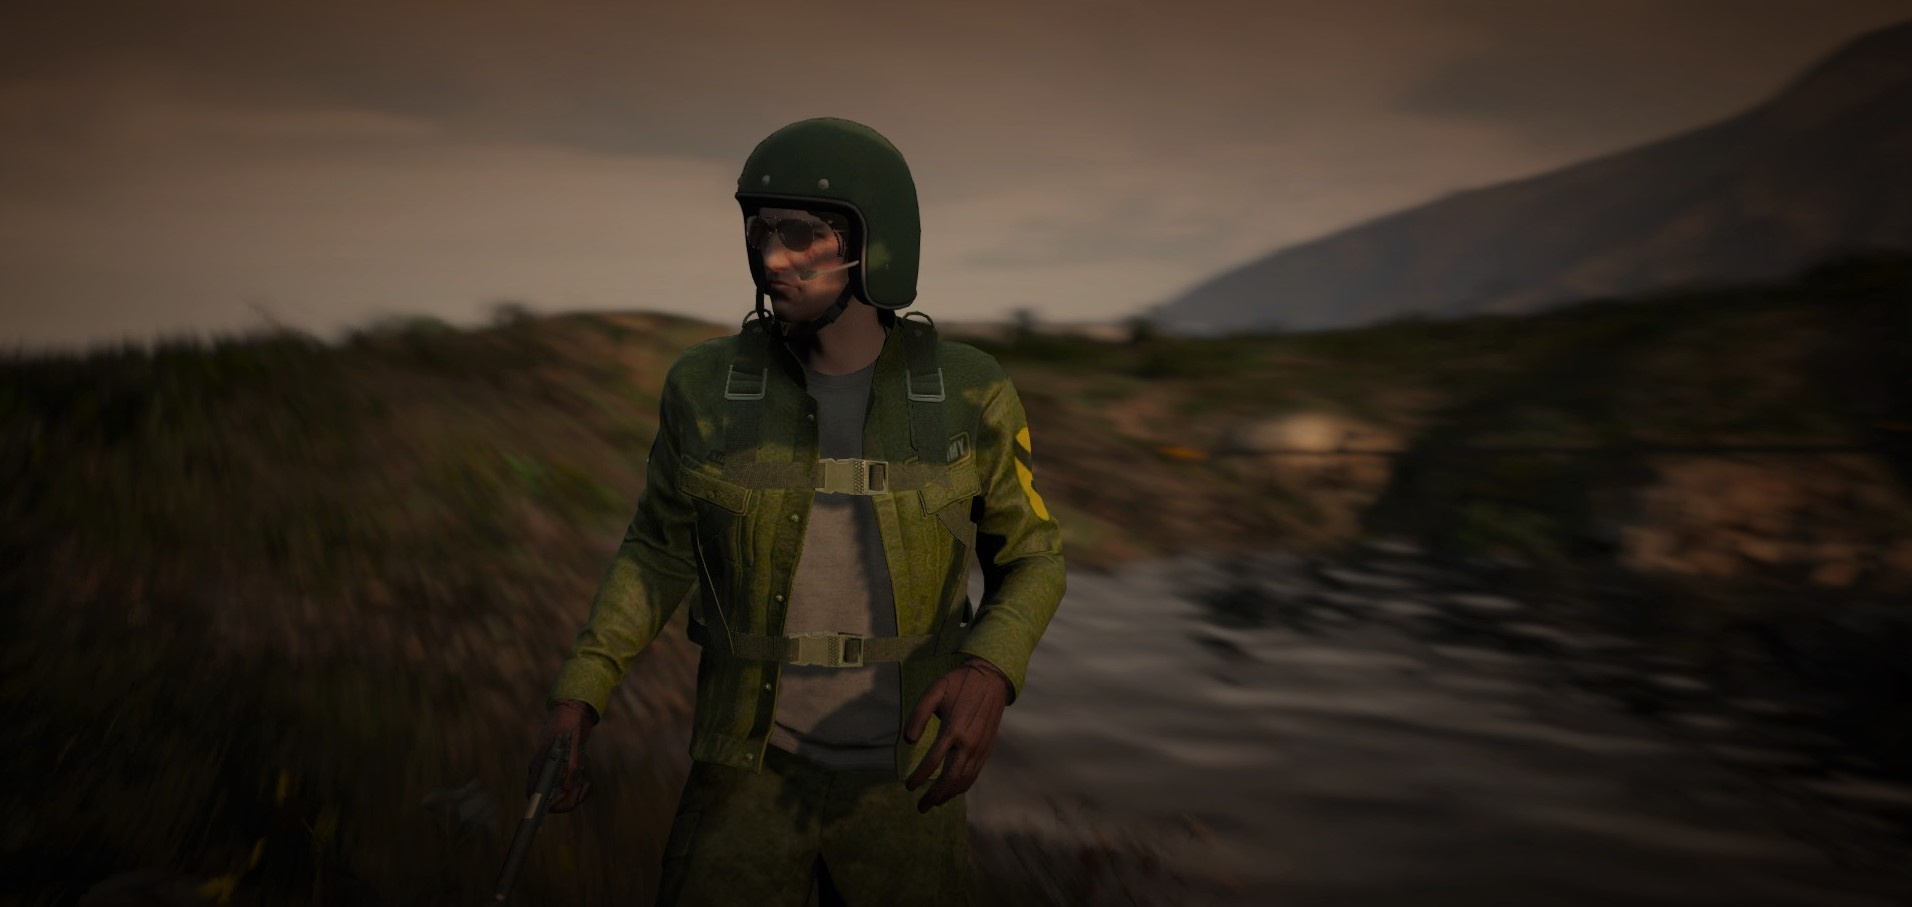 Vietnam War Uniforms Retexture Pack for MP_FREEMODE (+Skin Control